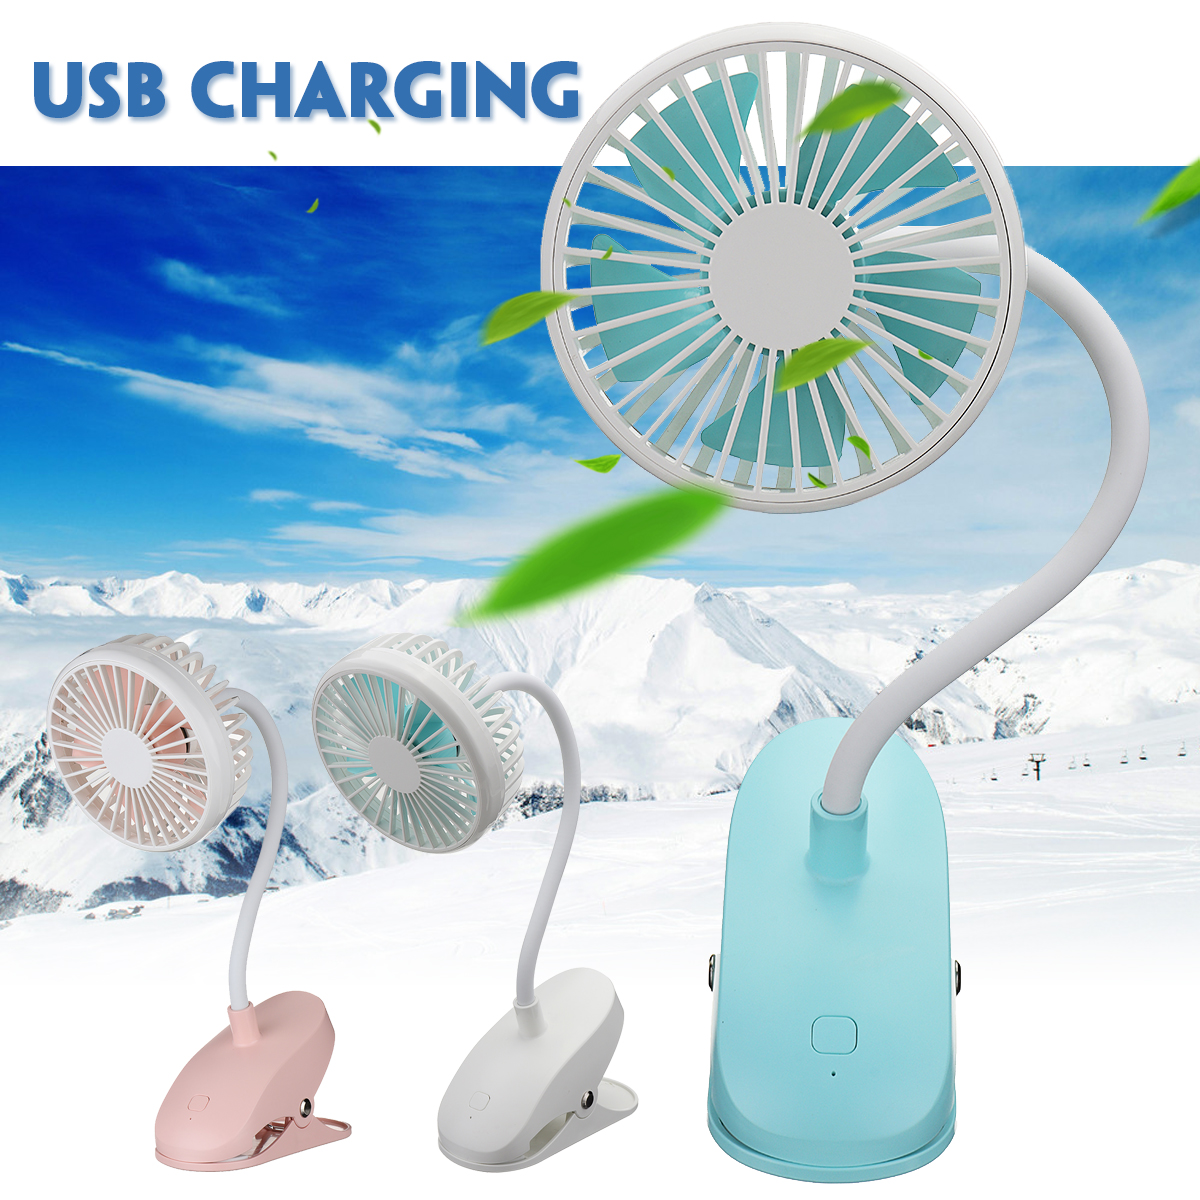 1Pcs Portable USB Rechargeable Electric Fan 5V 5W Table Desk Clip Fans 360 degree Adjustable Cooler Air Conditioner Fans 3 type air cooling clip fan or 360 degree rotating 2 gears adjustable car fan or suction cup adsorption fans